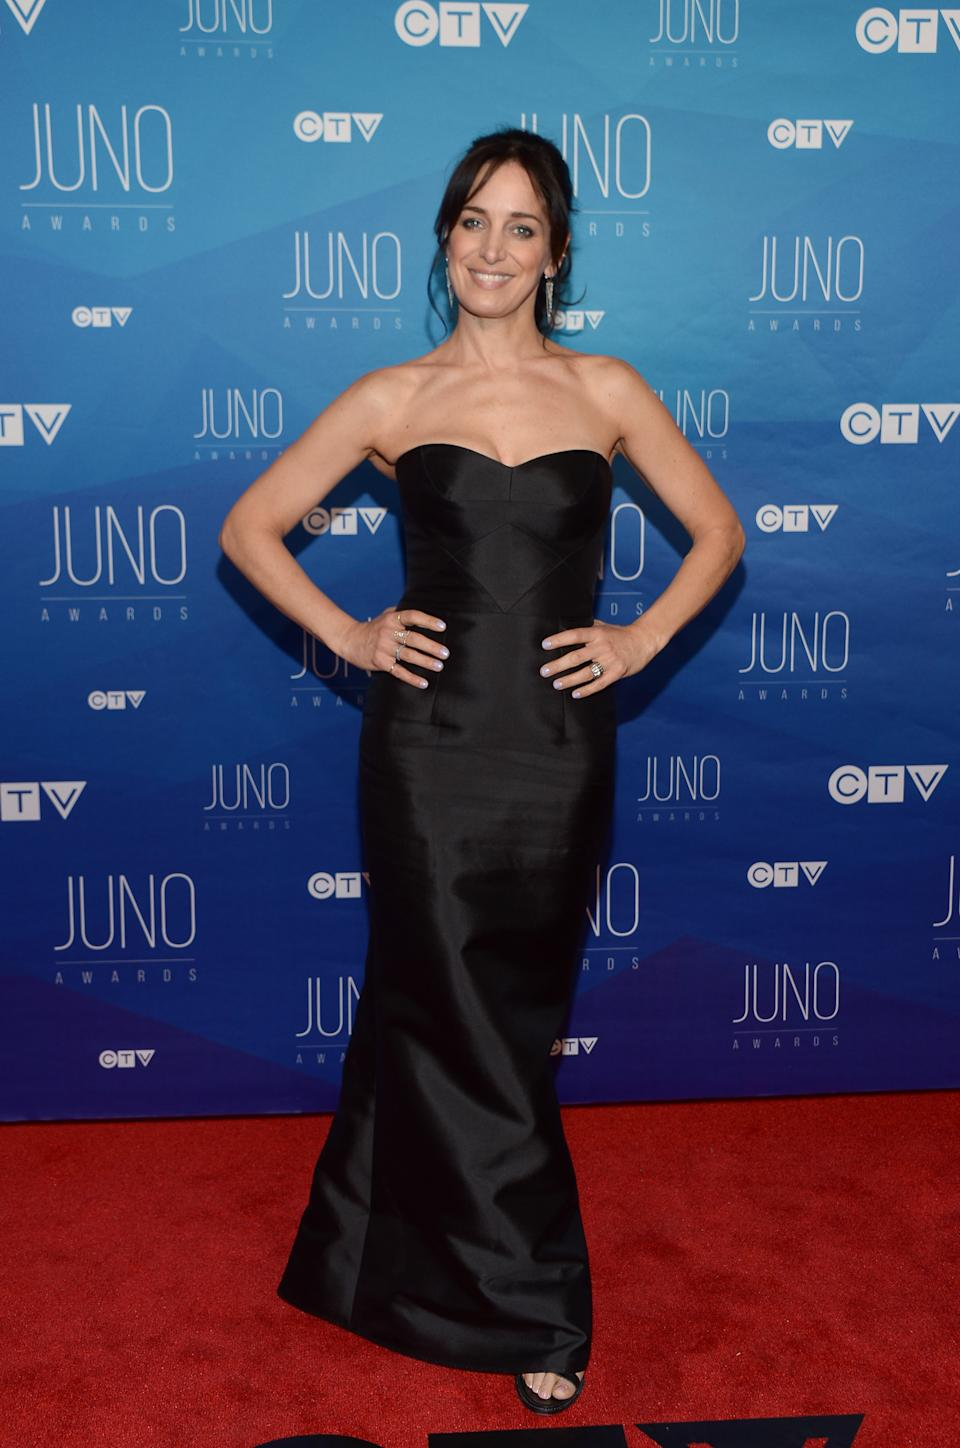 Kreviazuk at the  the 2017 Juno Awards. (Photo by George Pimentel/Getty Images)